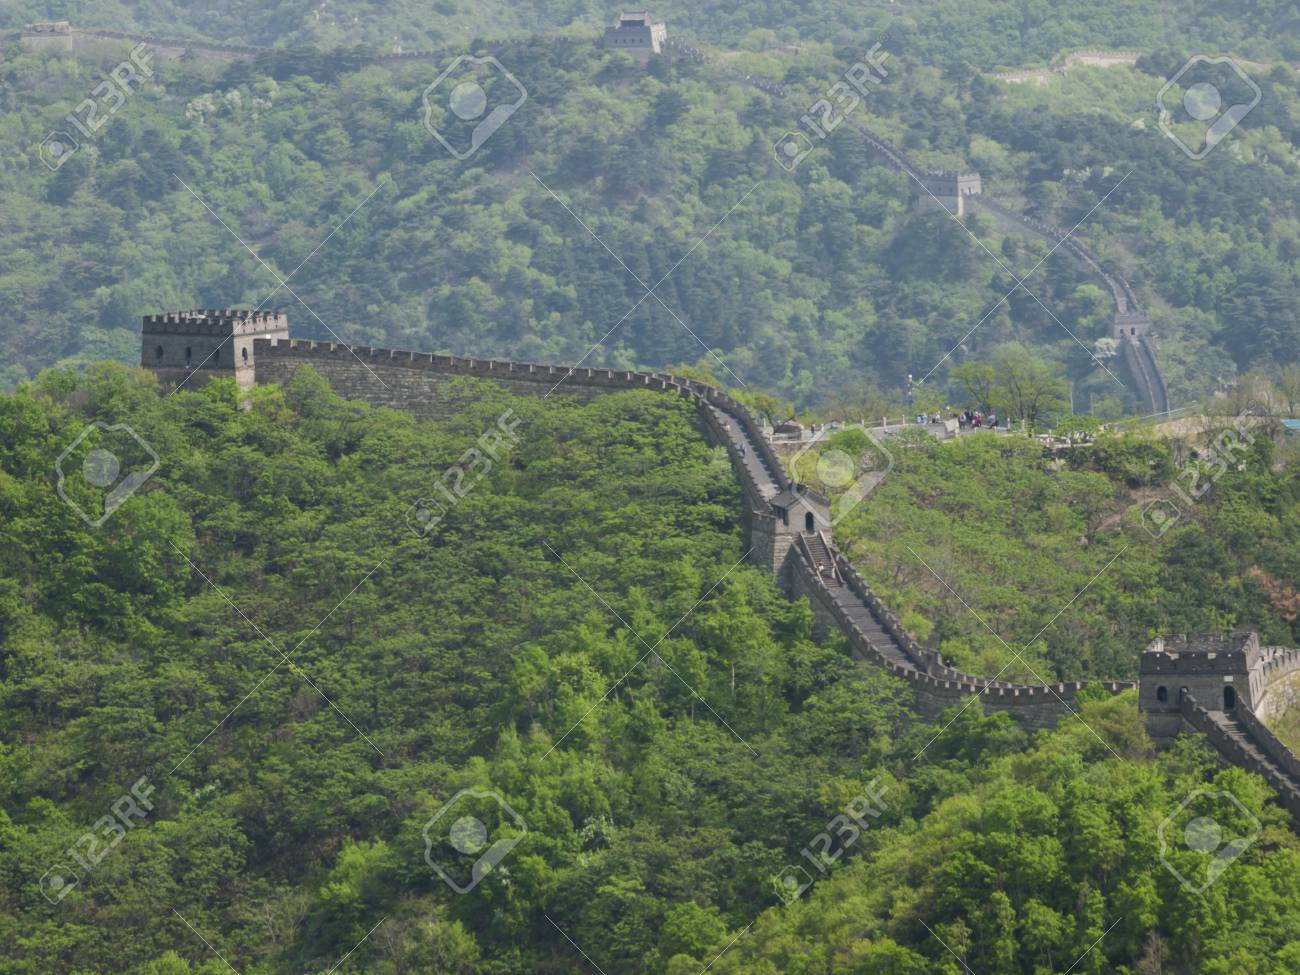 The Great Wall of China at the Mutianyu section near Beijing. Stock Photo - 16750452